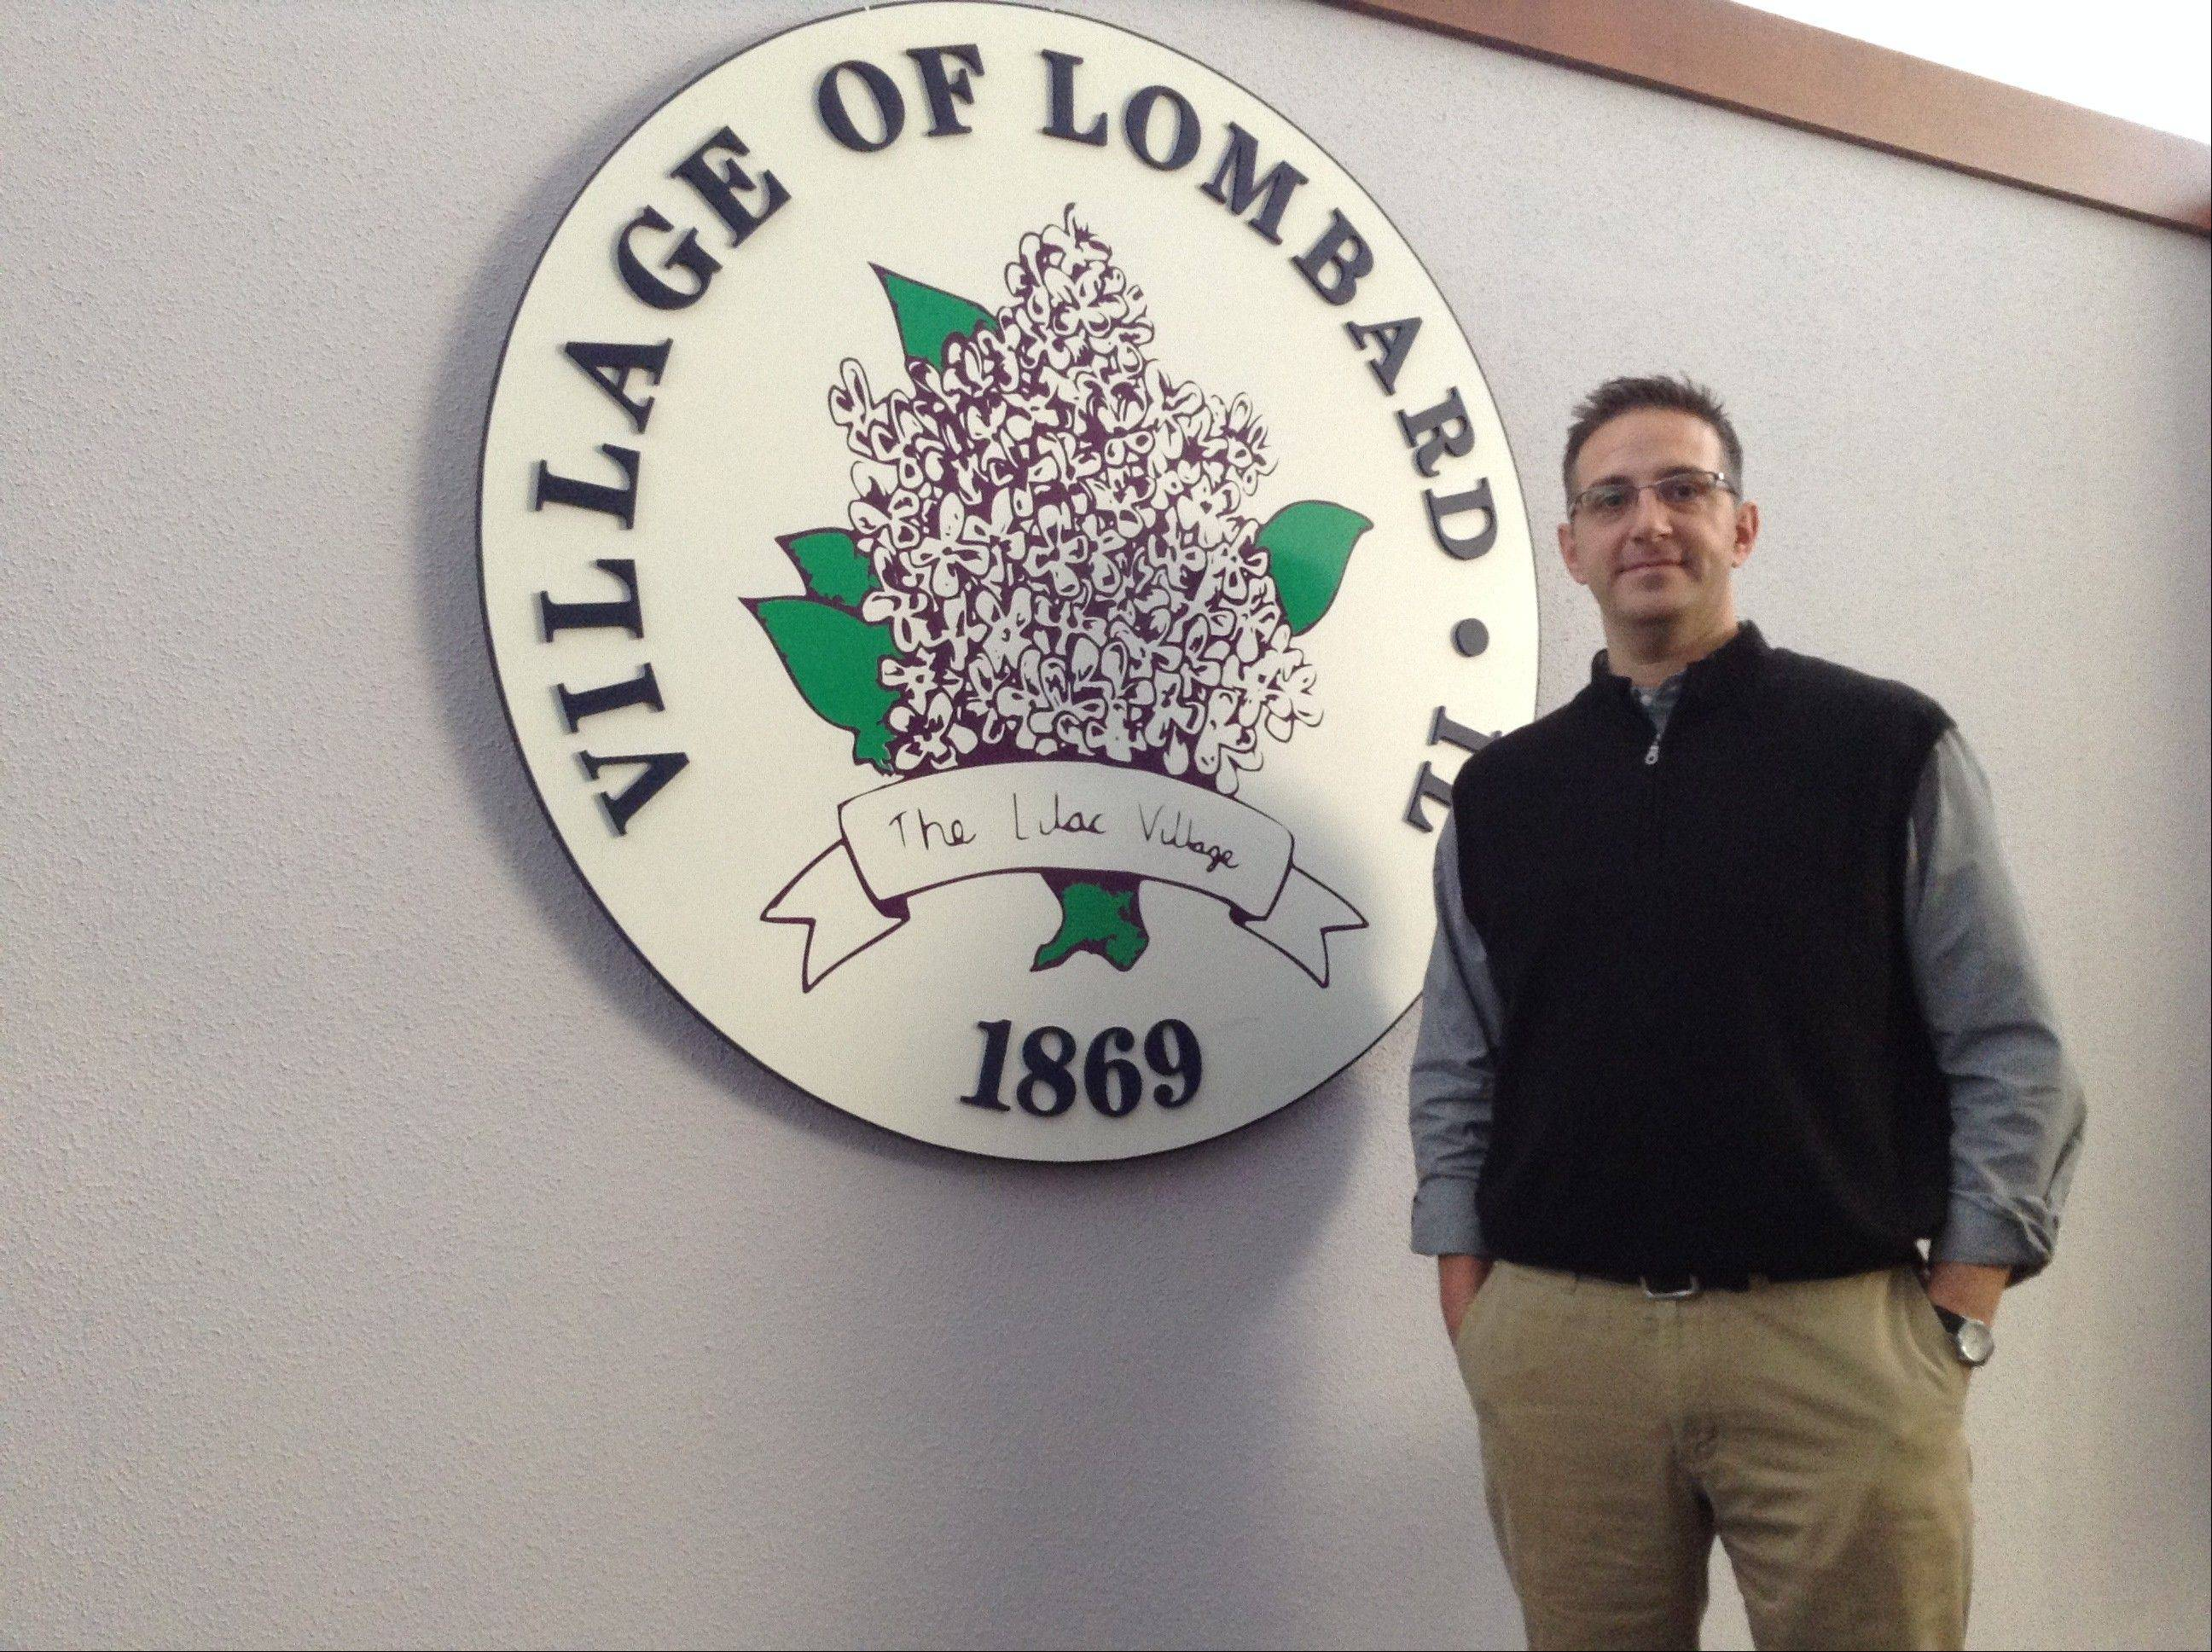 New Lombard Village Manager Scott Niehaus took the reins on Jan. 21 after 10 years as village manager in Tinley Park.